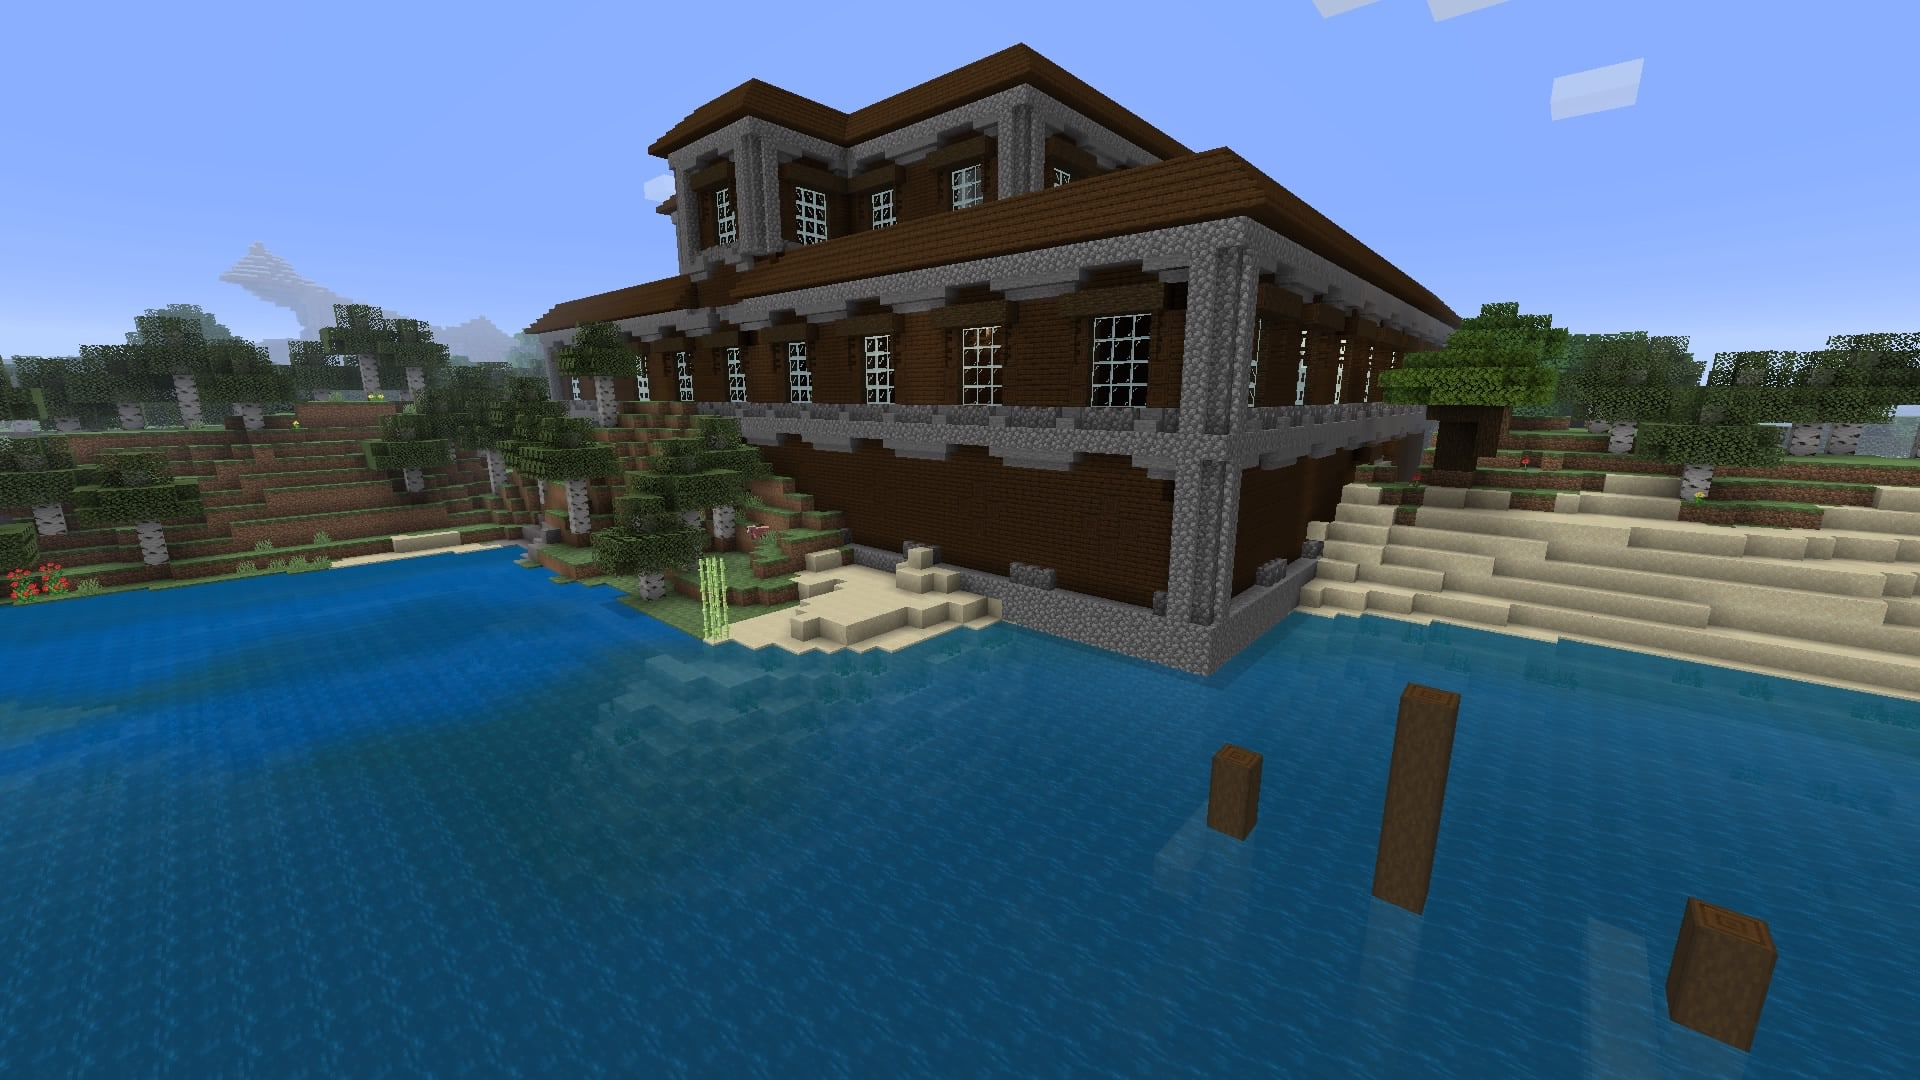 Minecraft PS4 Mansion Seed